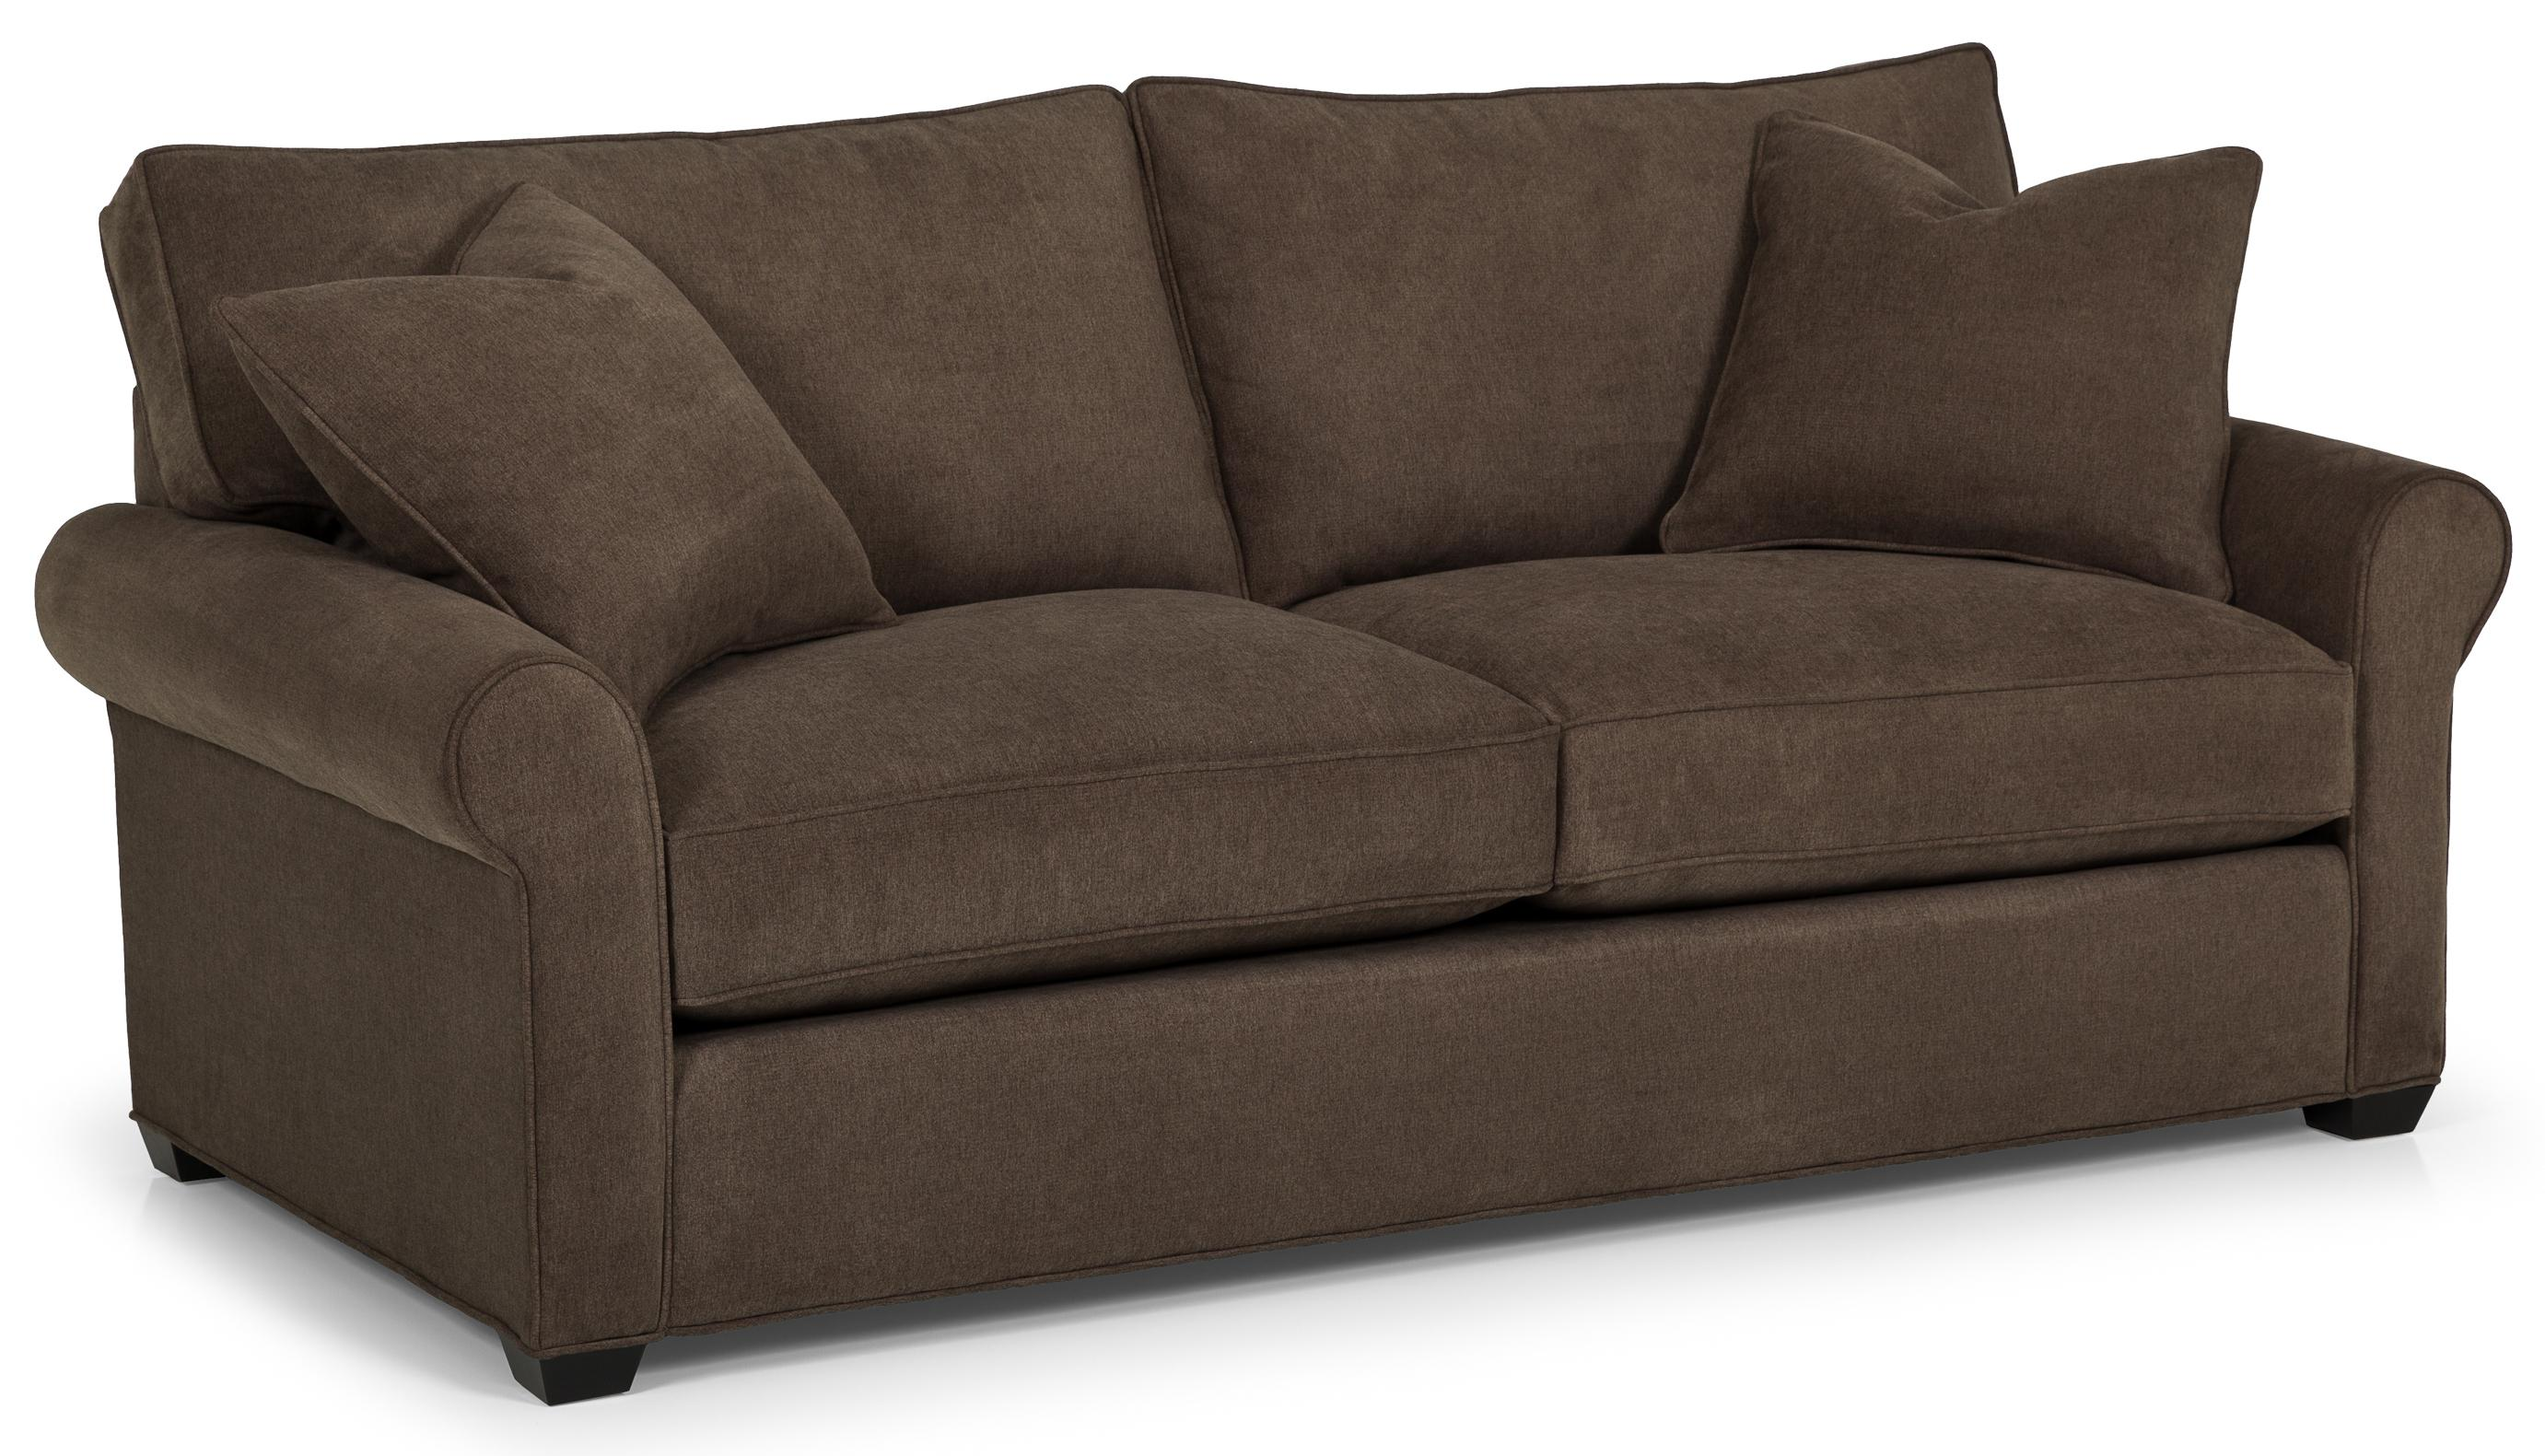 225 Transitional Stationary Sofa by Stanton at Wilson's Furniture